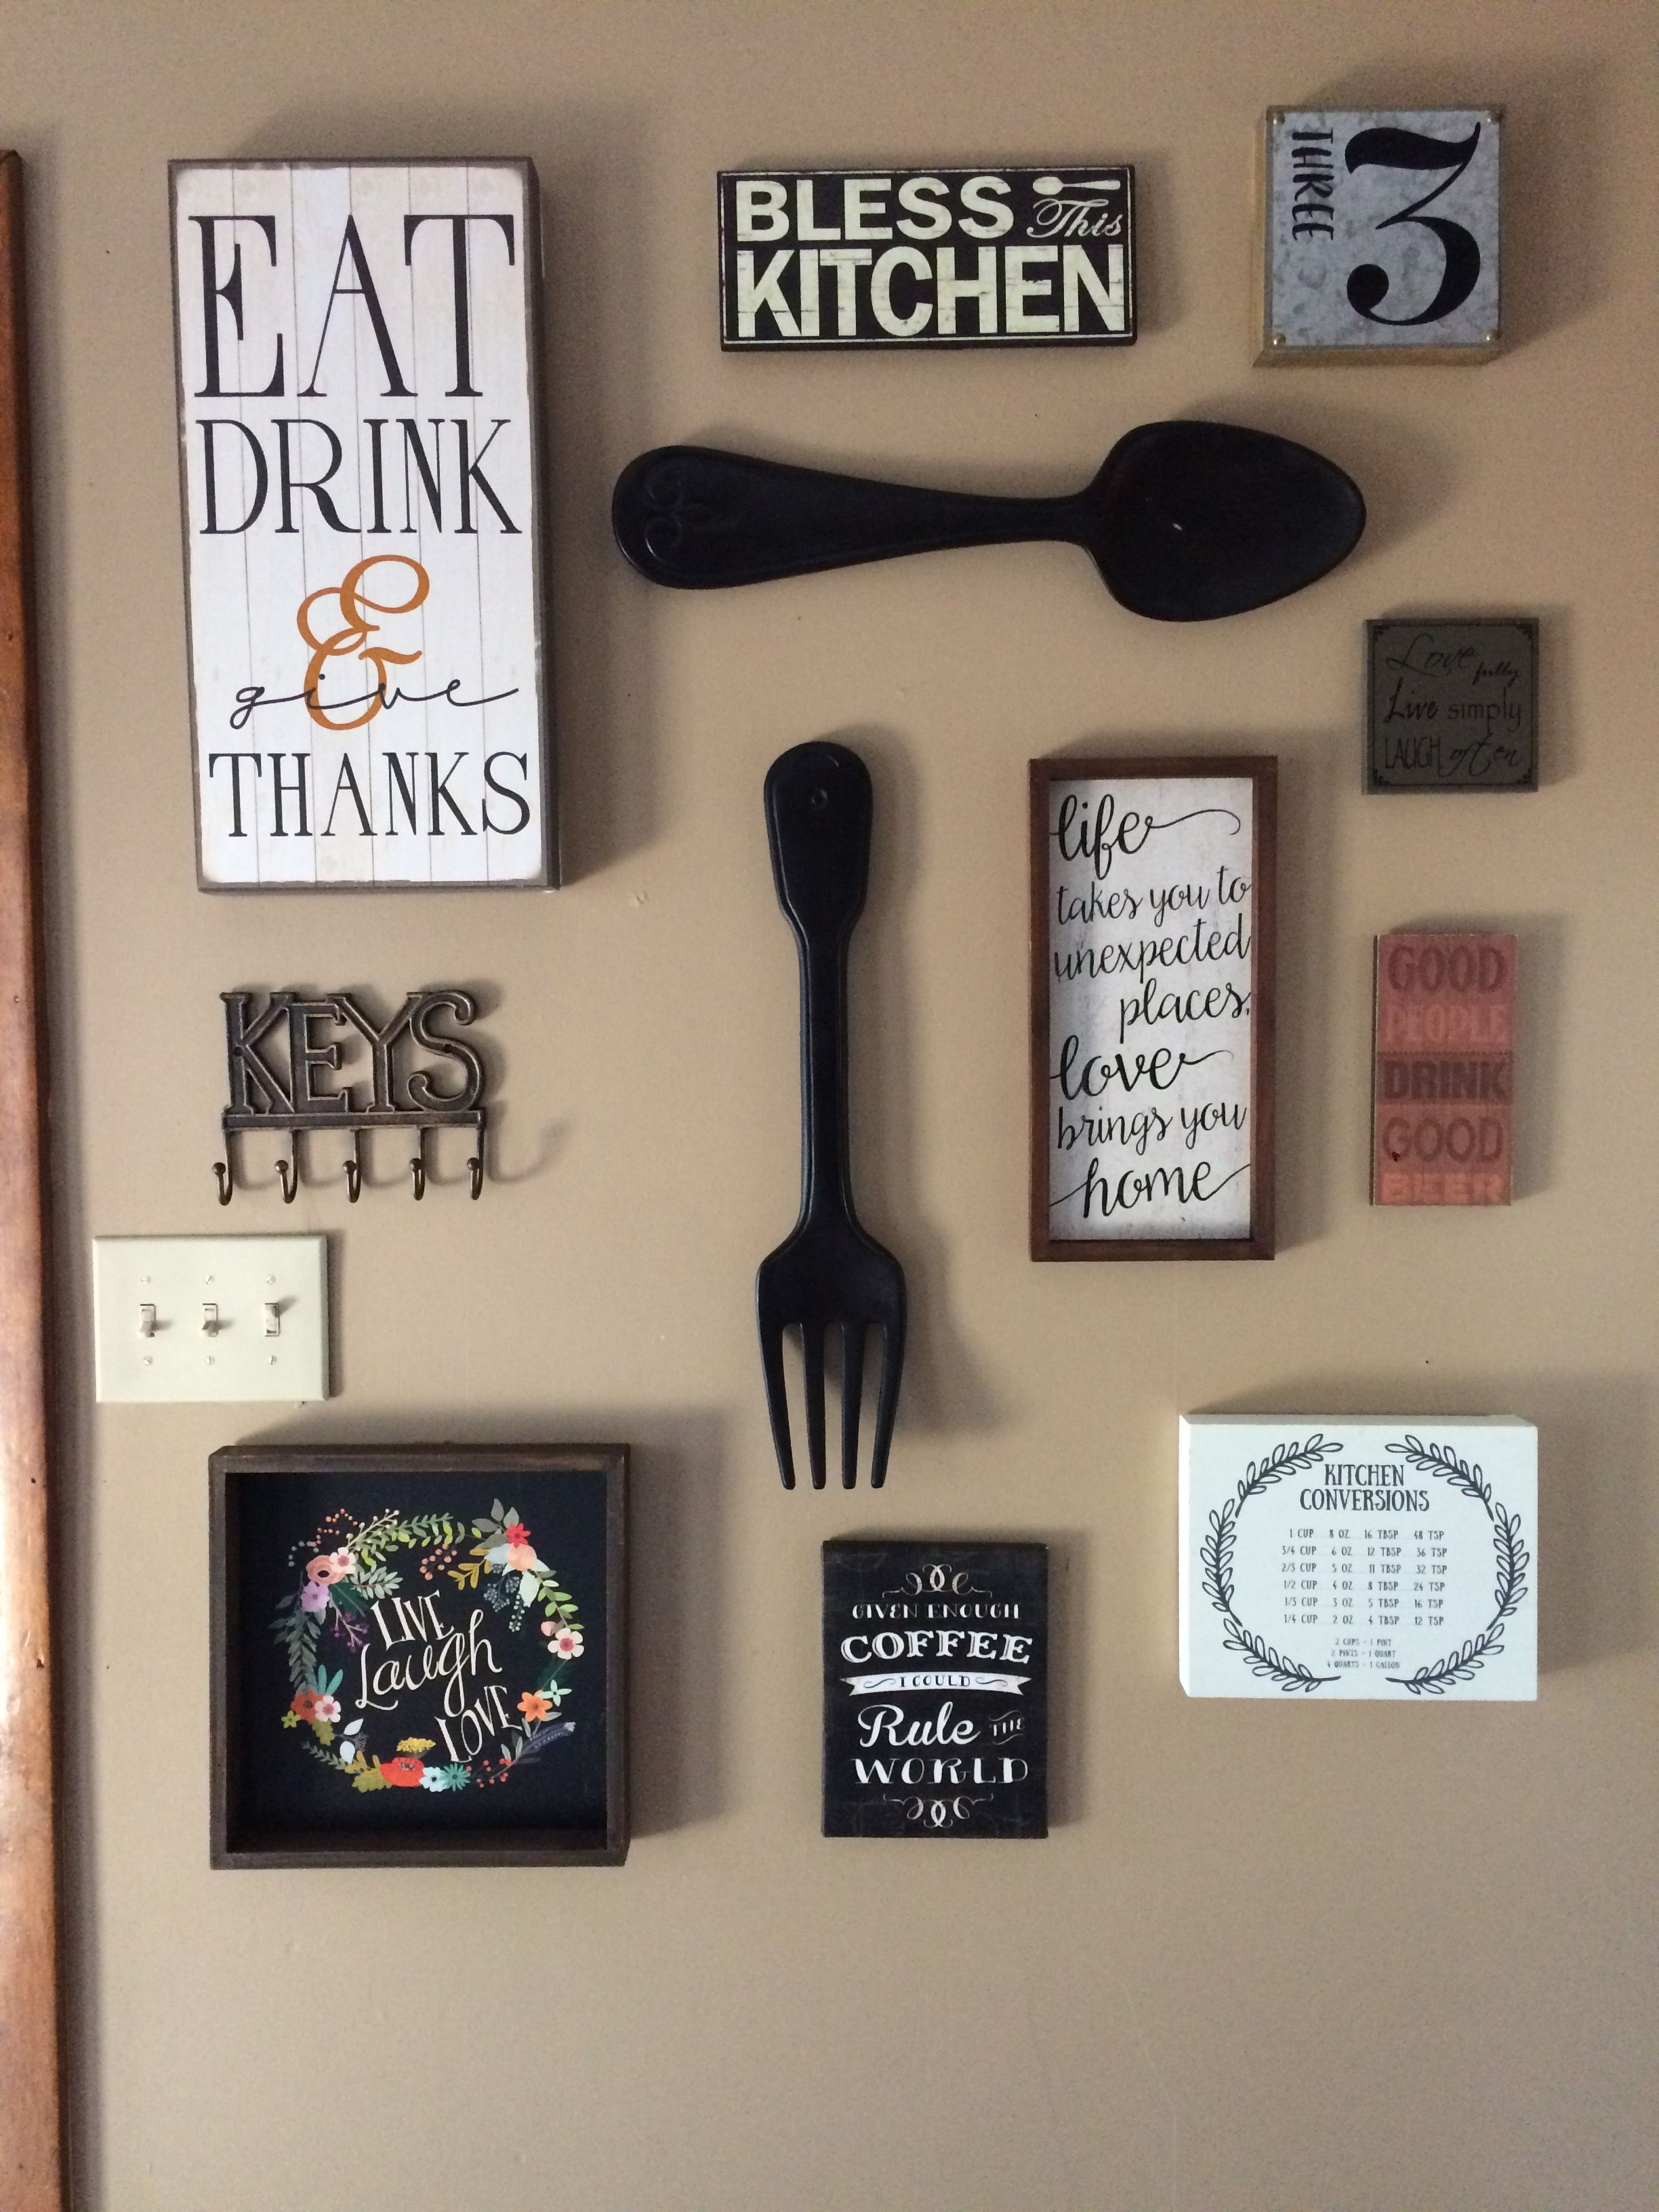 My kitchen gallery wall. All decor from hobby lobby and Ross